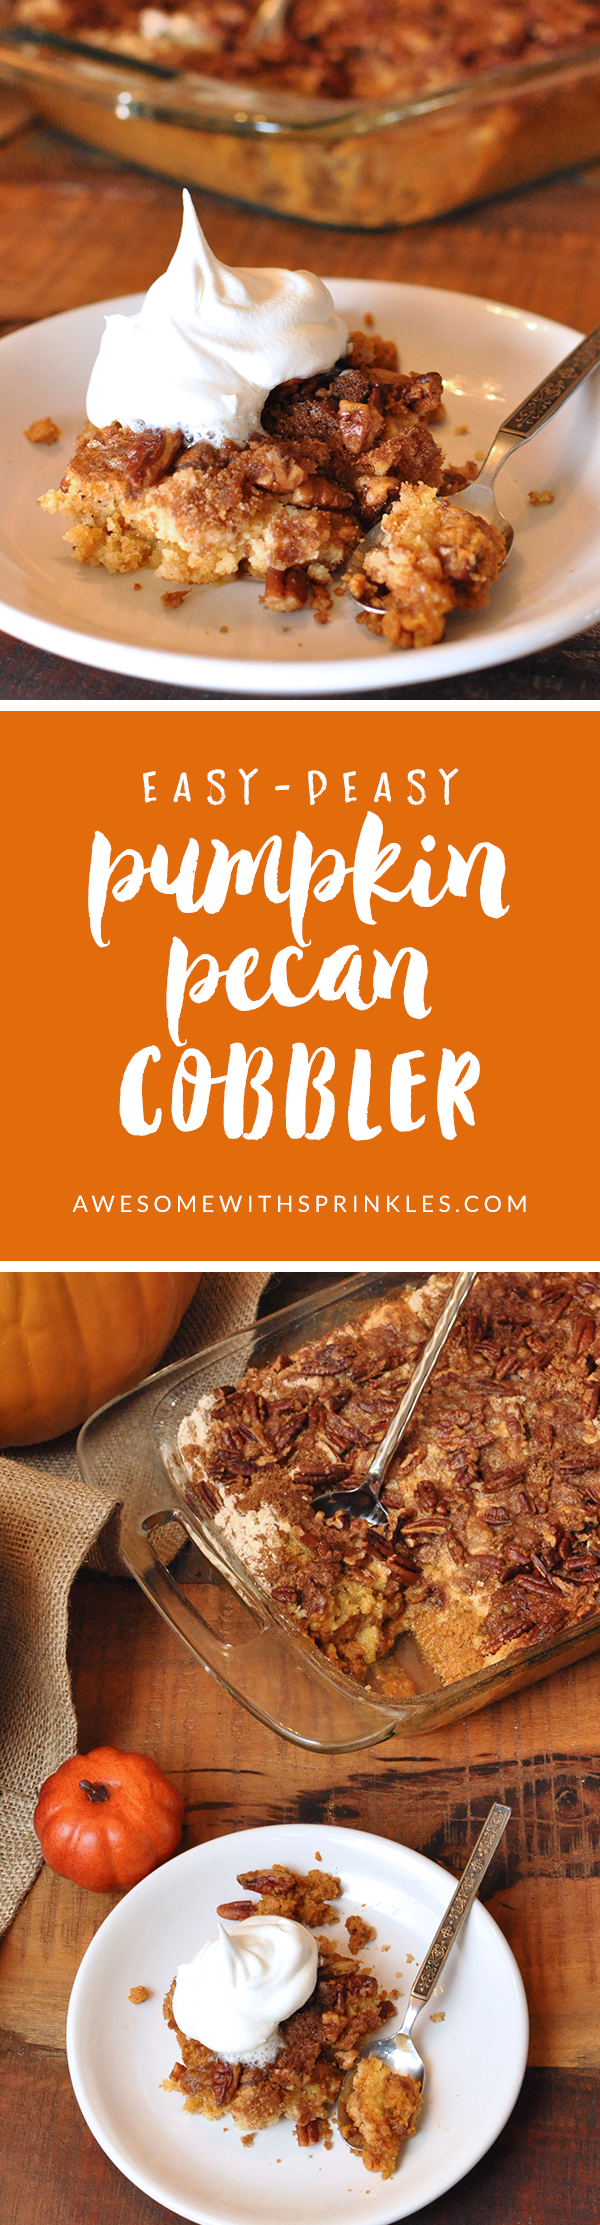 Pumpkin Pecan Cobbler | Awesome with Sprinkles